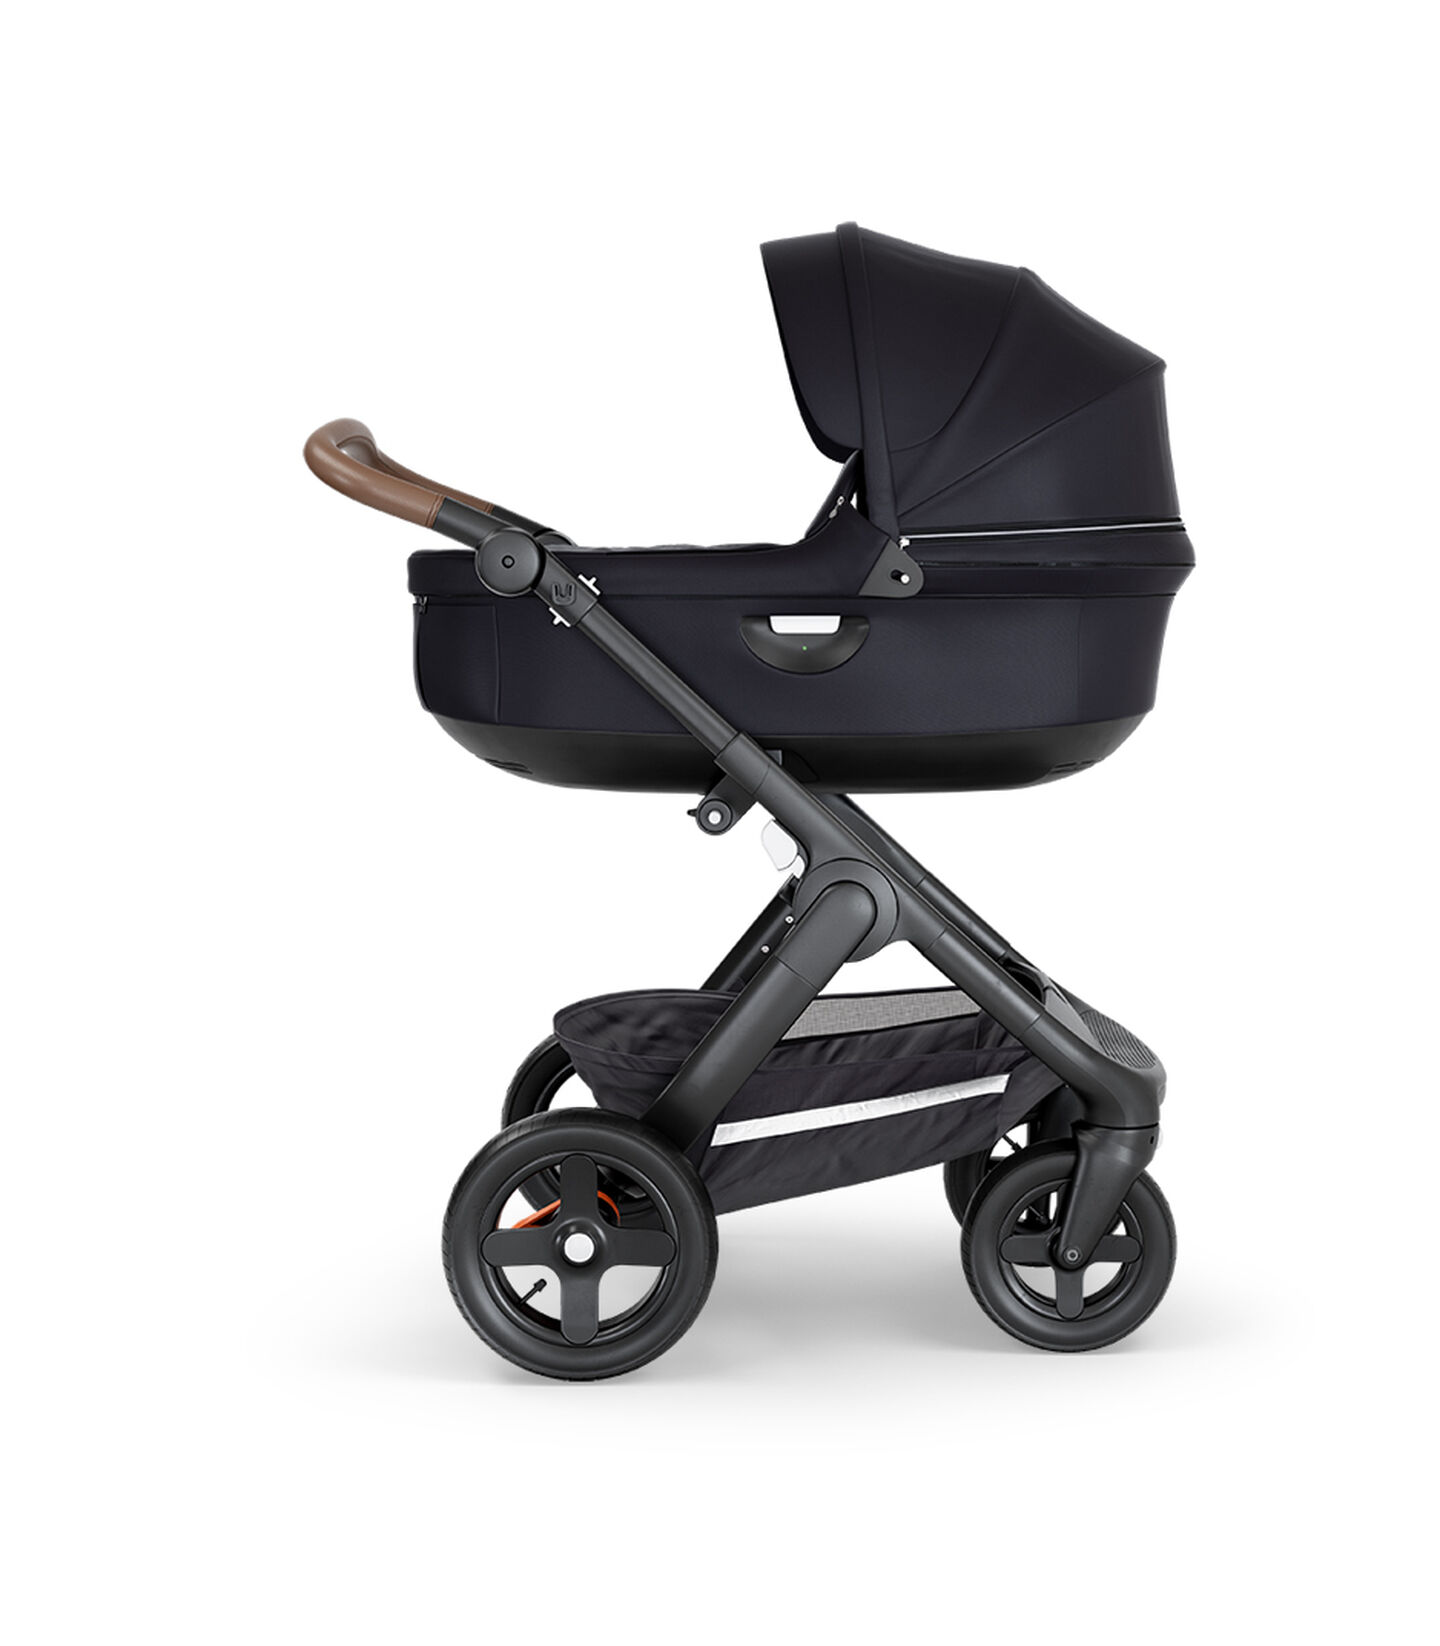 Stokke® Trailz™ with Black Chassis, Brown Leatherette and Terrain Wheels. Stokke® Stroller Carry Cot, Black.